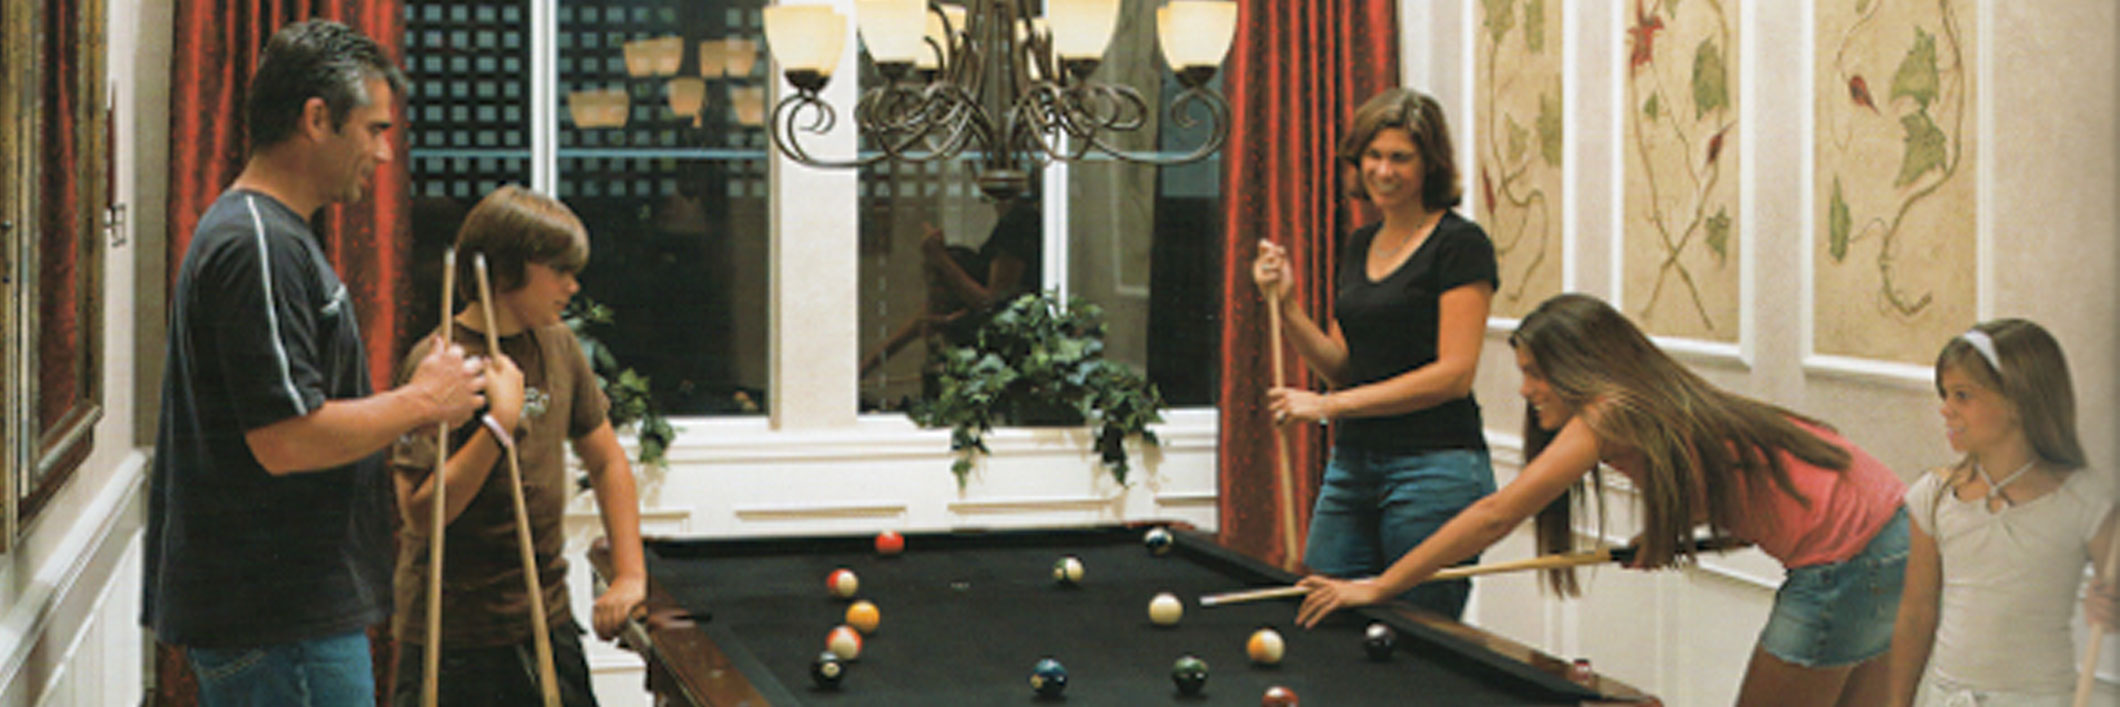 630.834.1220 Cue N Cushion, Pool Tables, Billiards In Chicago Area